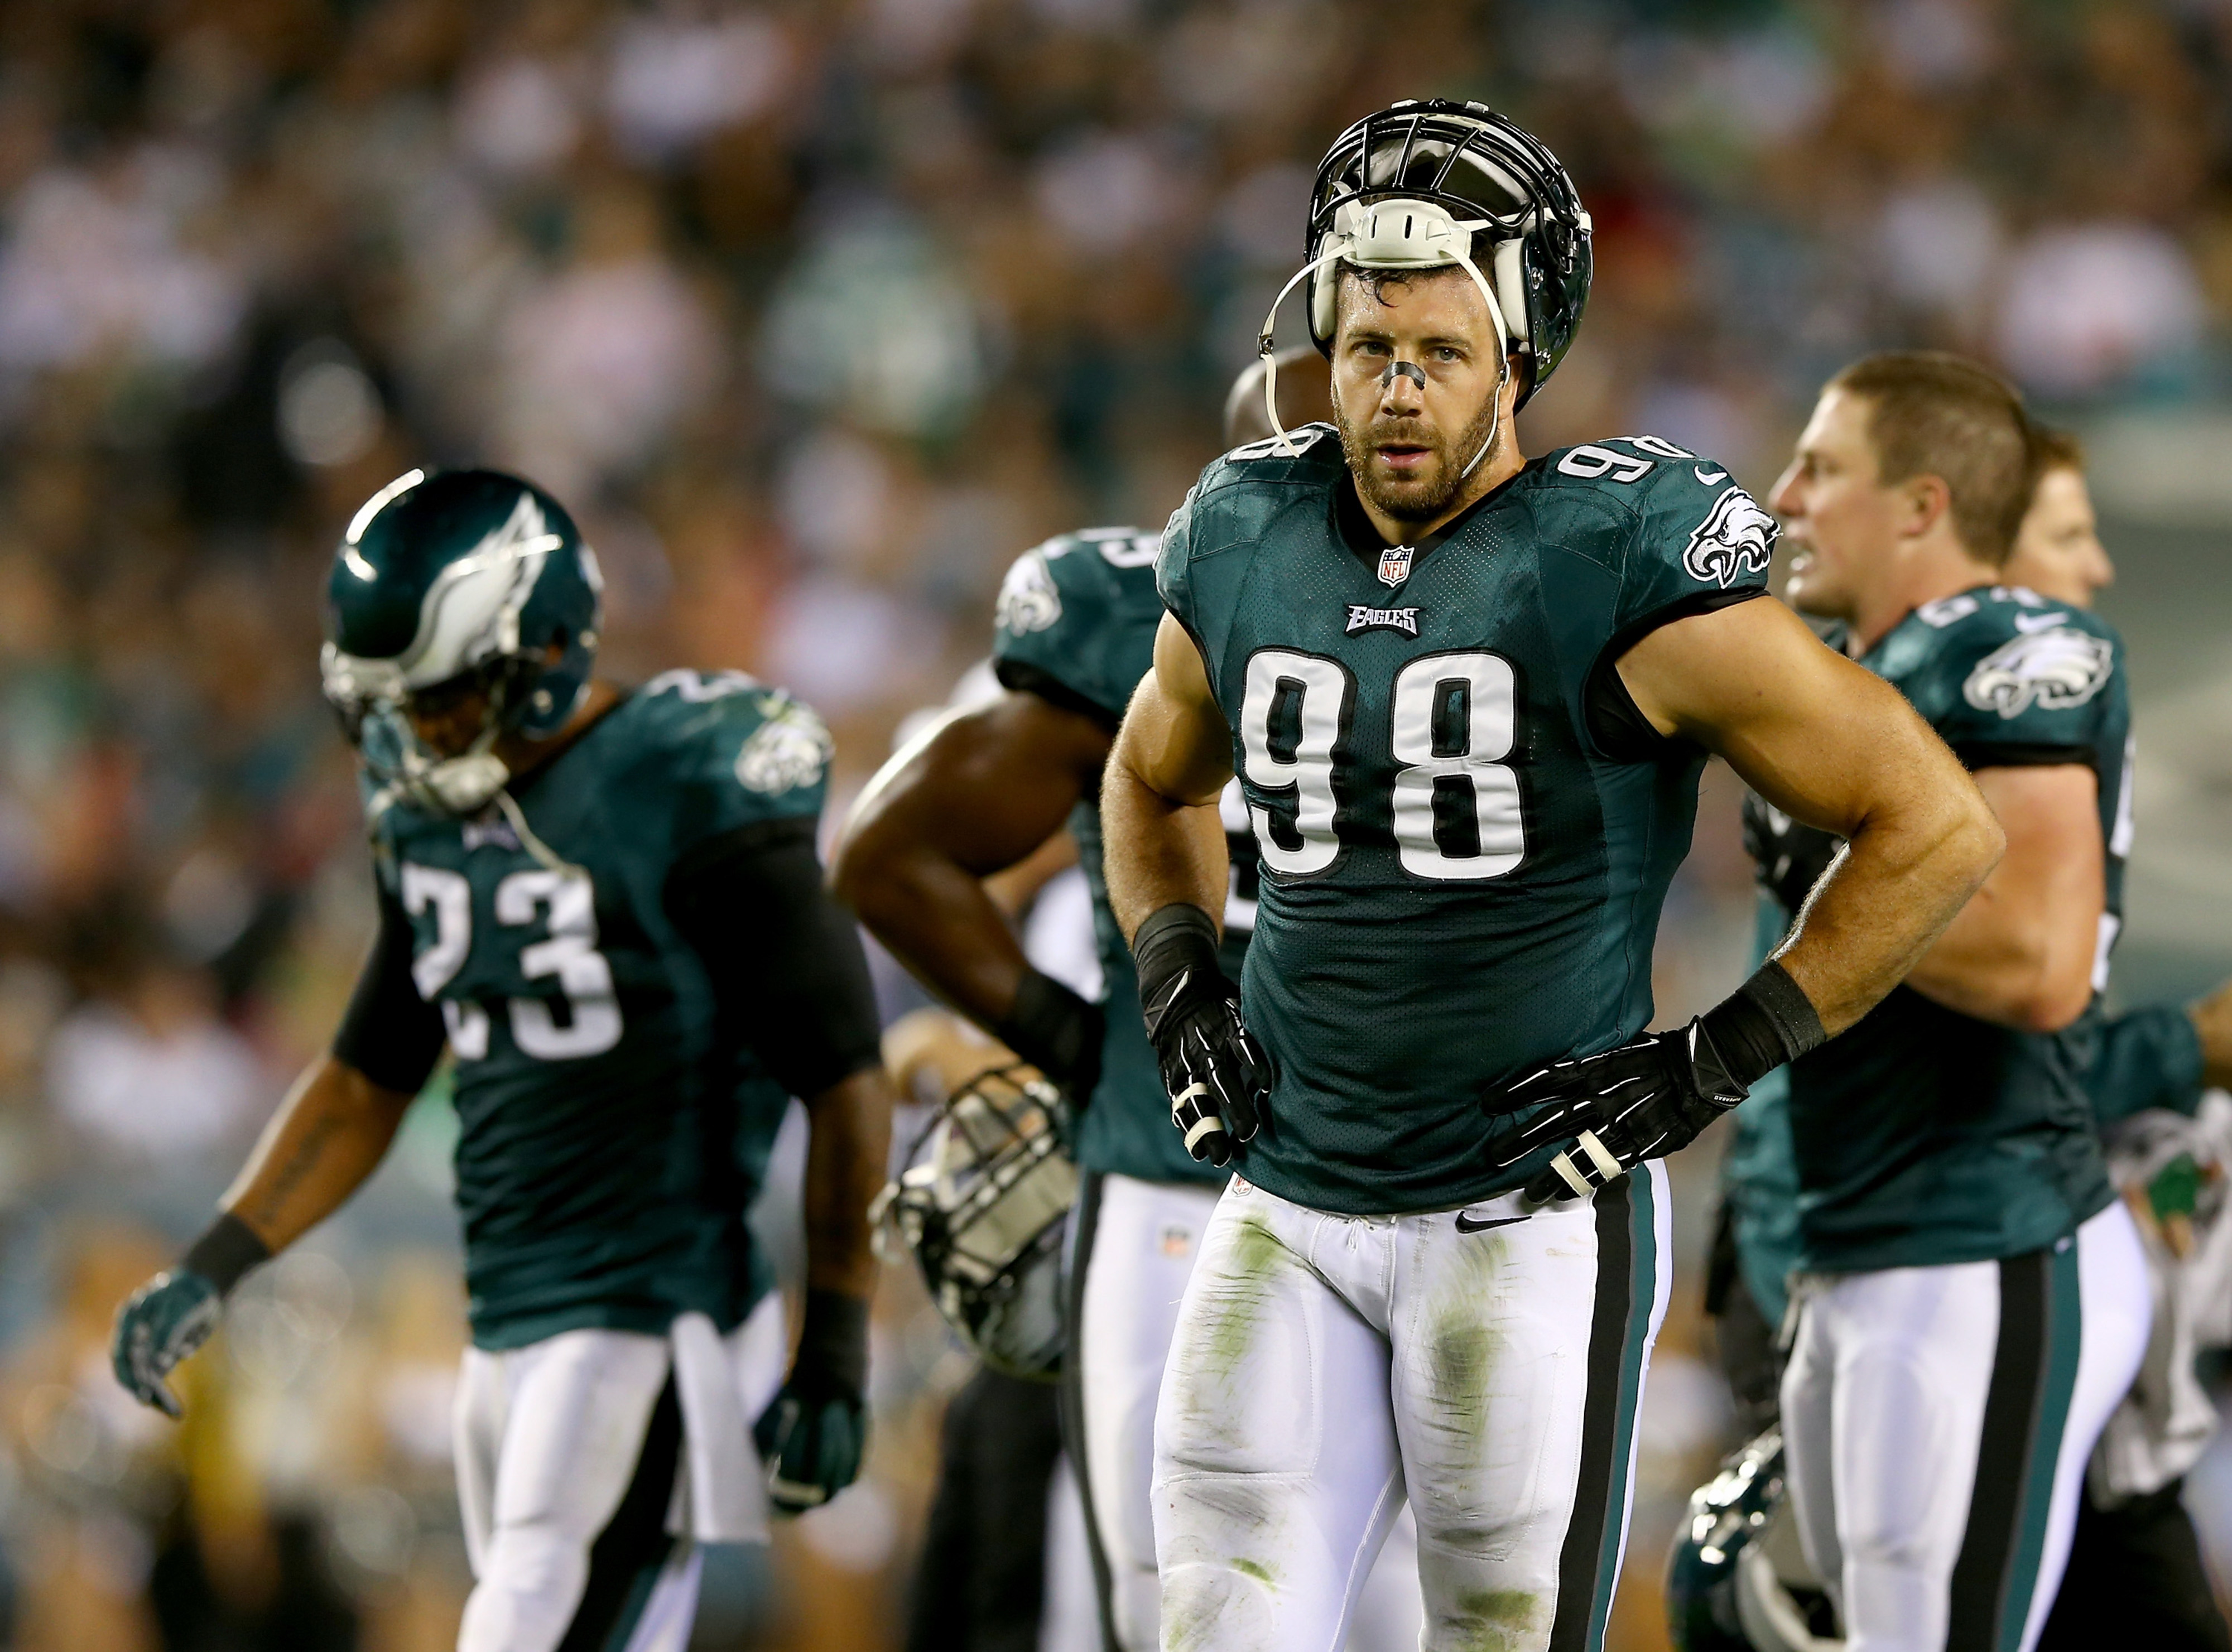 Still feels weird to see Connor Barwin in a different jersey.